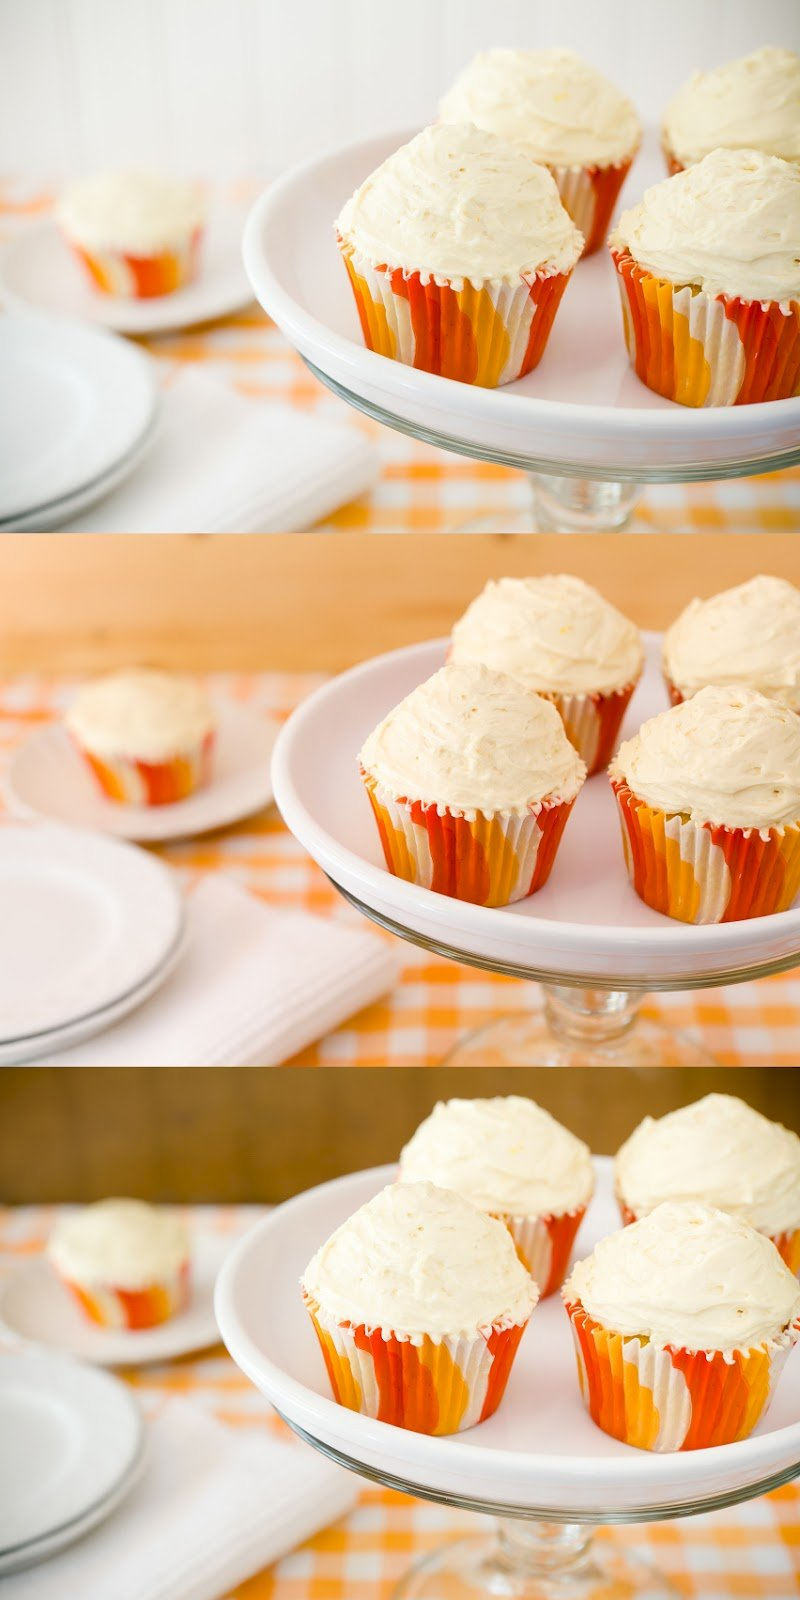 Orange Creamsicle Cupcakes With Orange Salted Caramel Buttercream